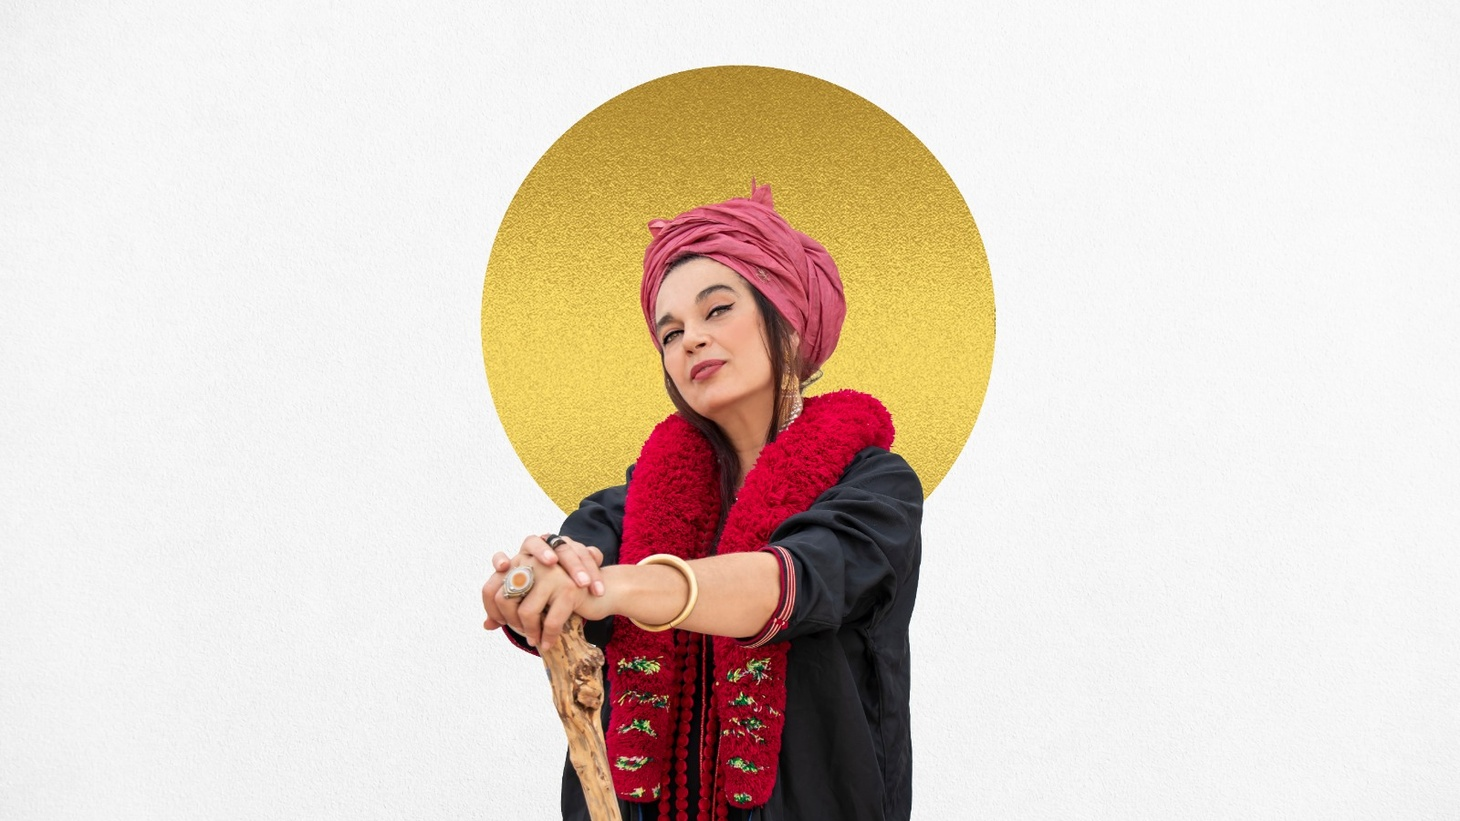 """Frontwoman for the Spanish flamenco/hip-hop outfit Ojos de Brujo, Marinah brings her powerful force to """"Vuelo"""" or flight, an ode to freedom and the perseverance of women."""